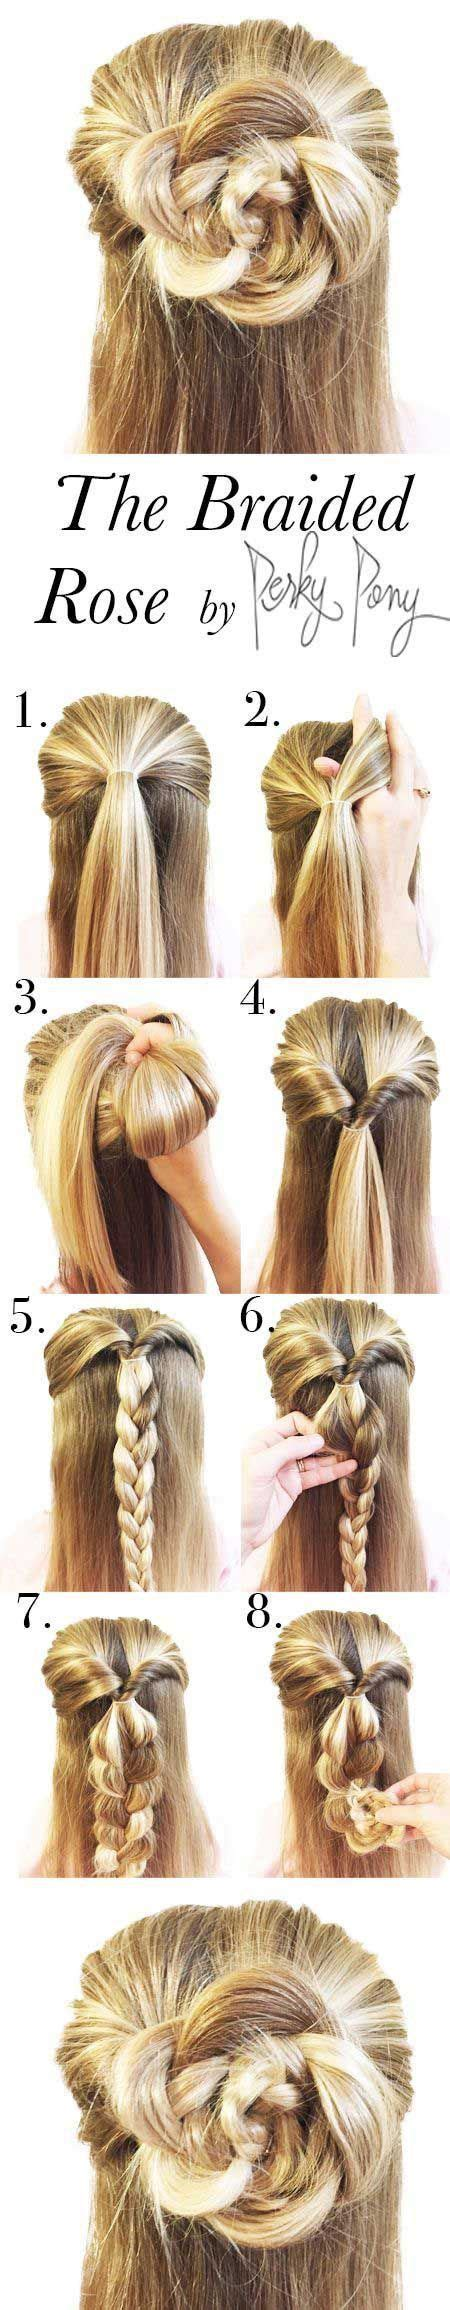 hairstyle ideas for nurses 28 best images about hairstyles for nurses on pinterest